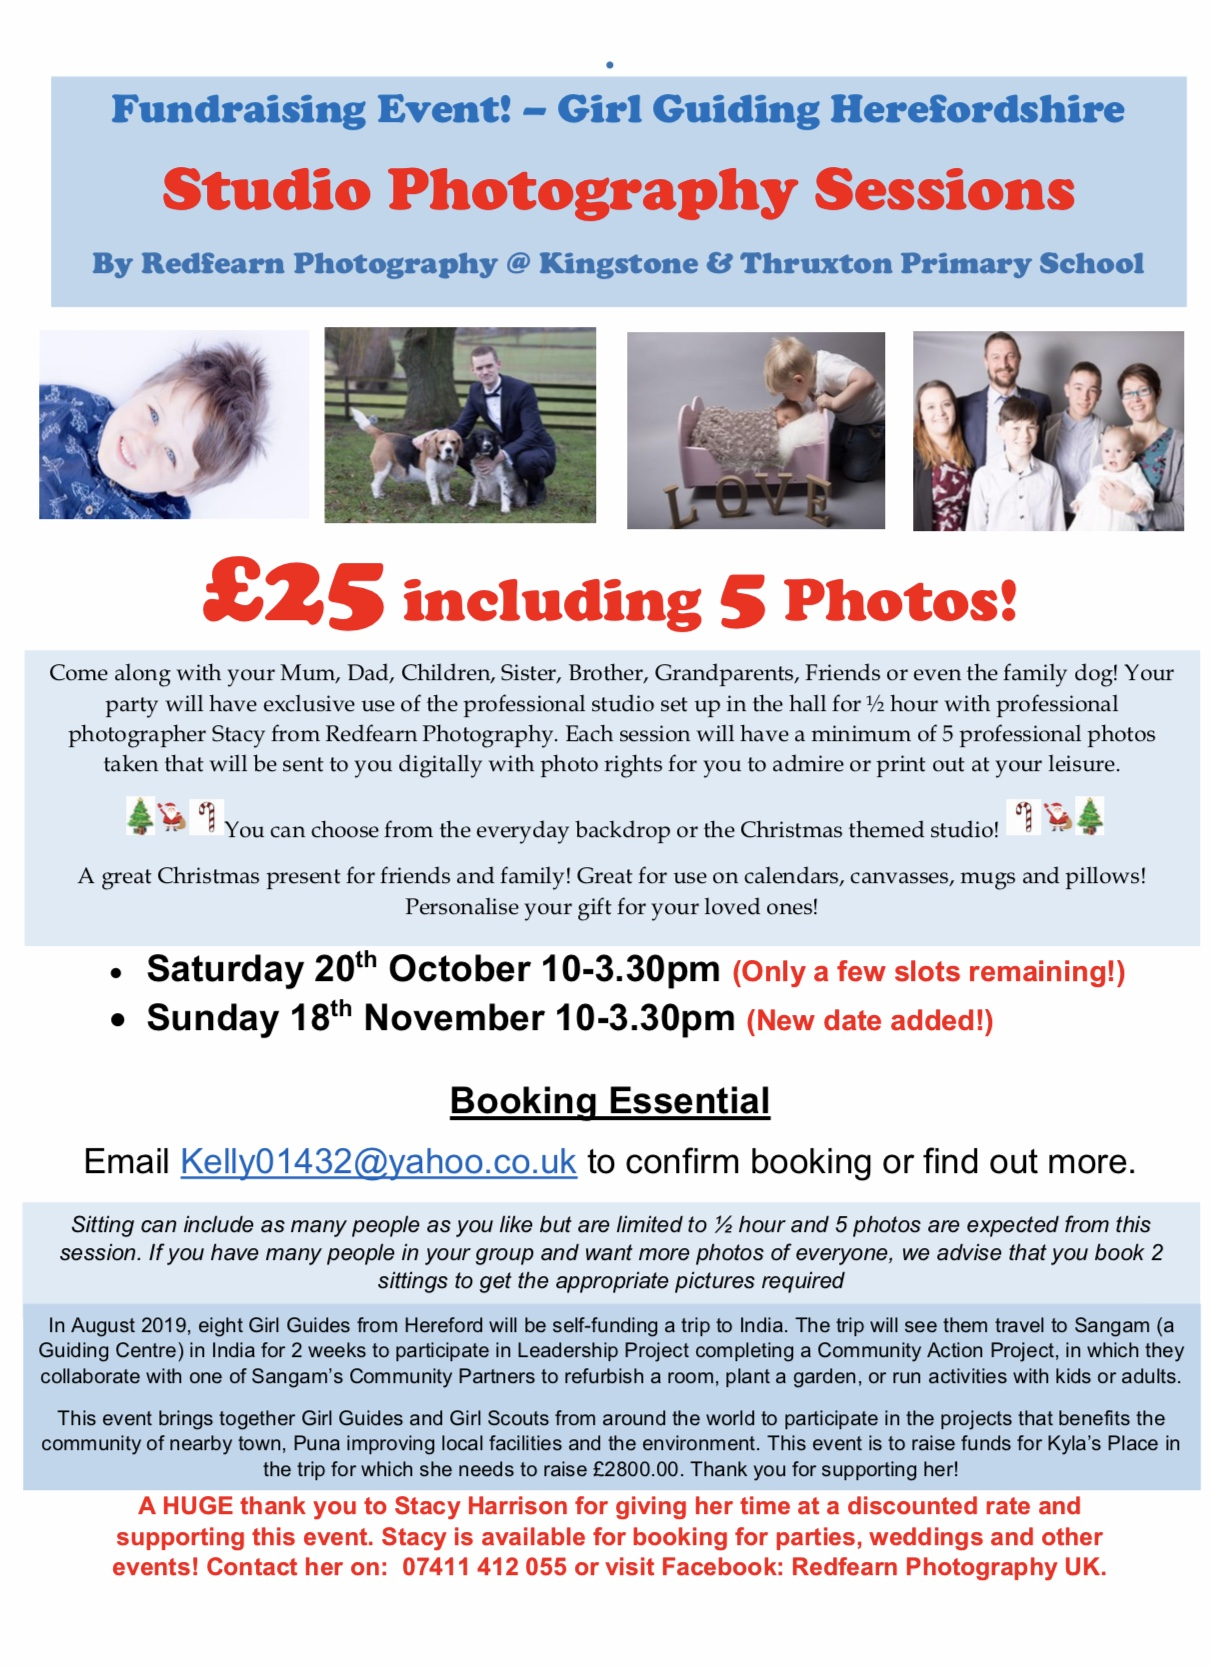 Fundraising Photo-Shoot! £25 with 5 free photos!